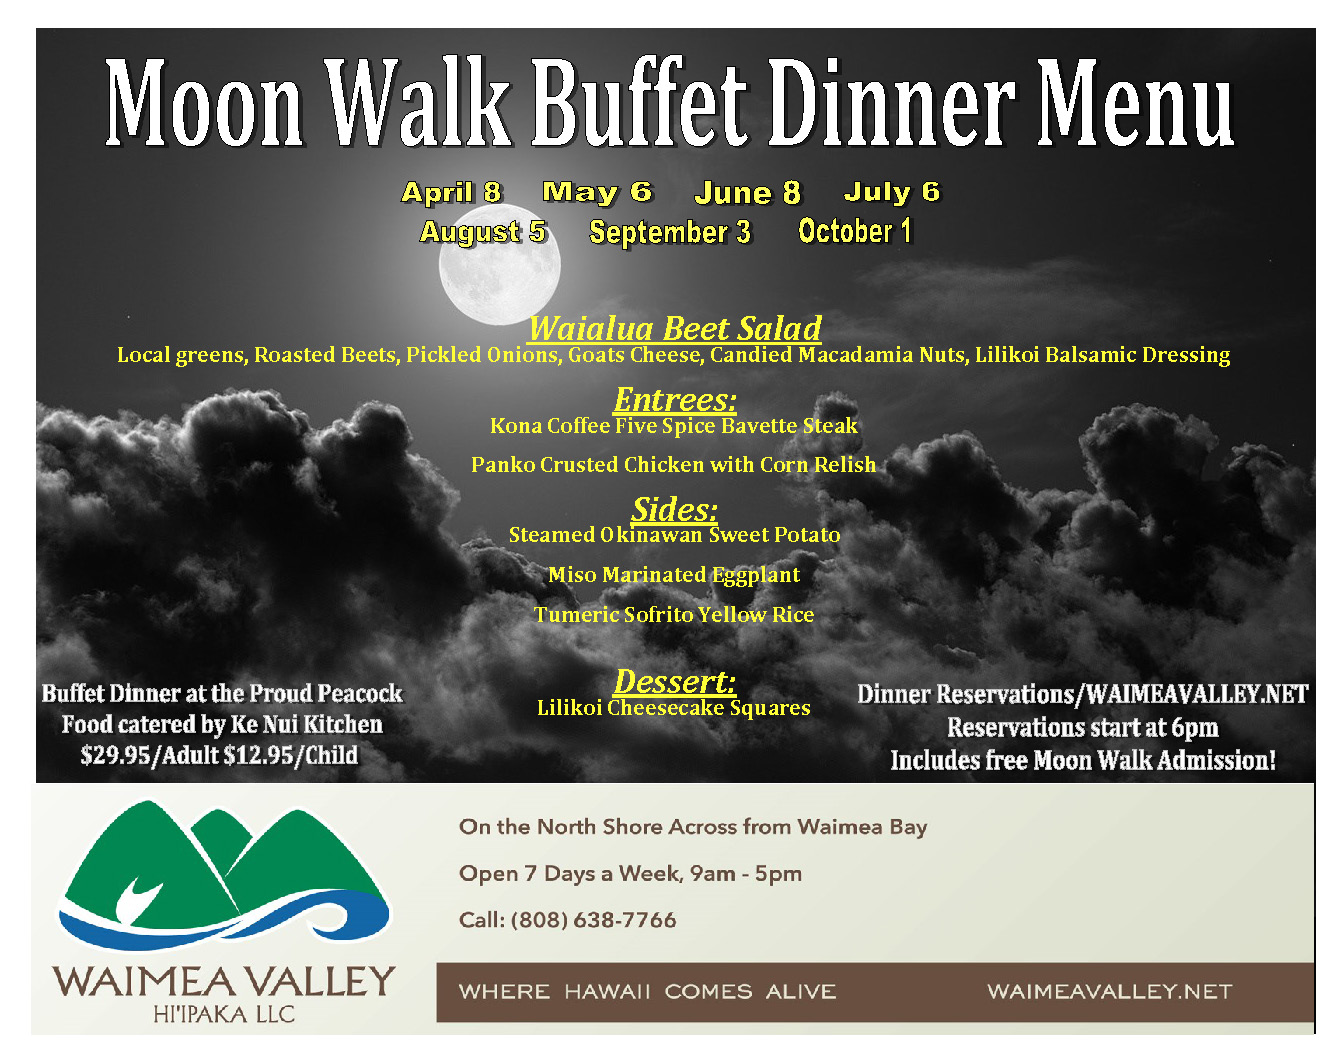 Moon Walk Buffet Line Menu